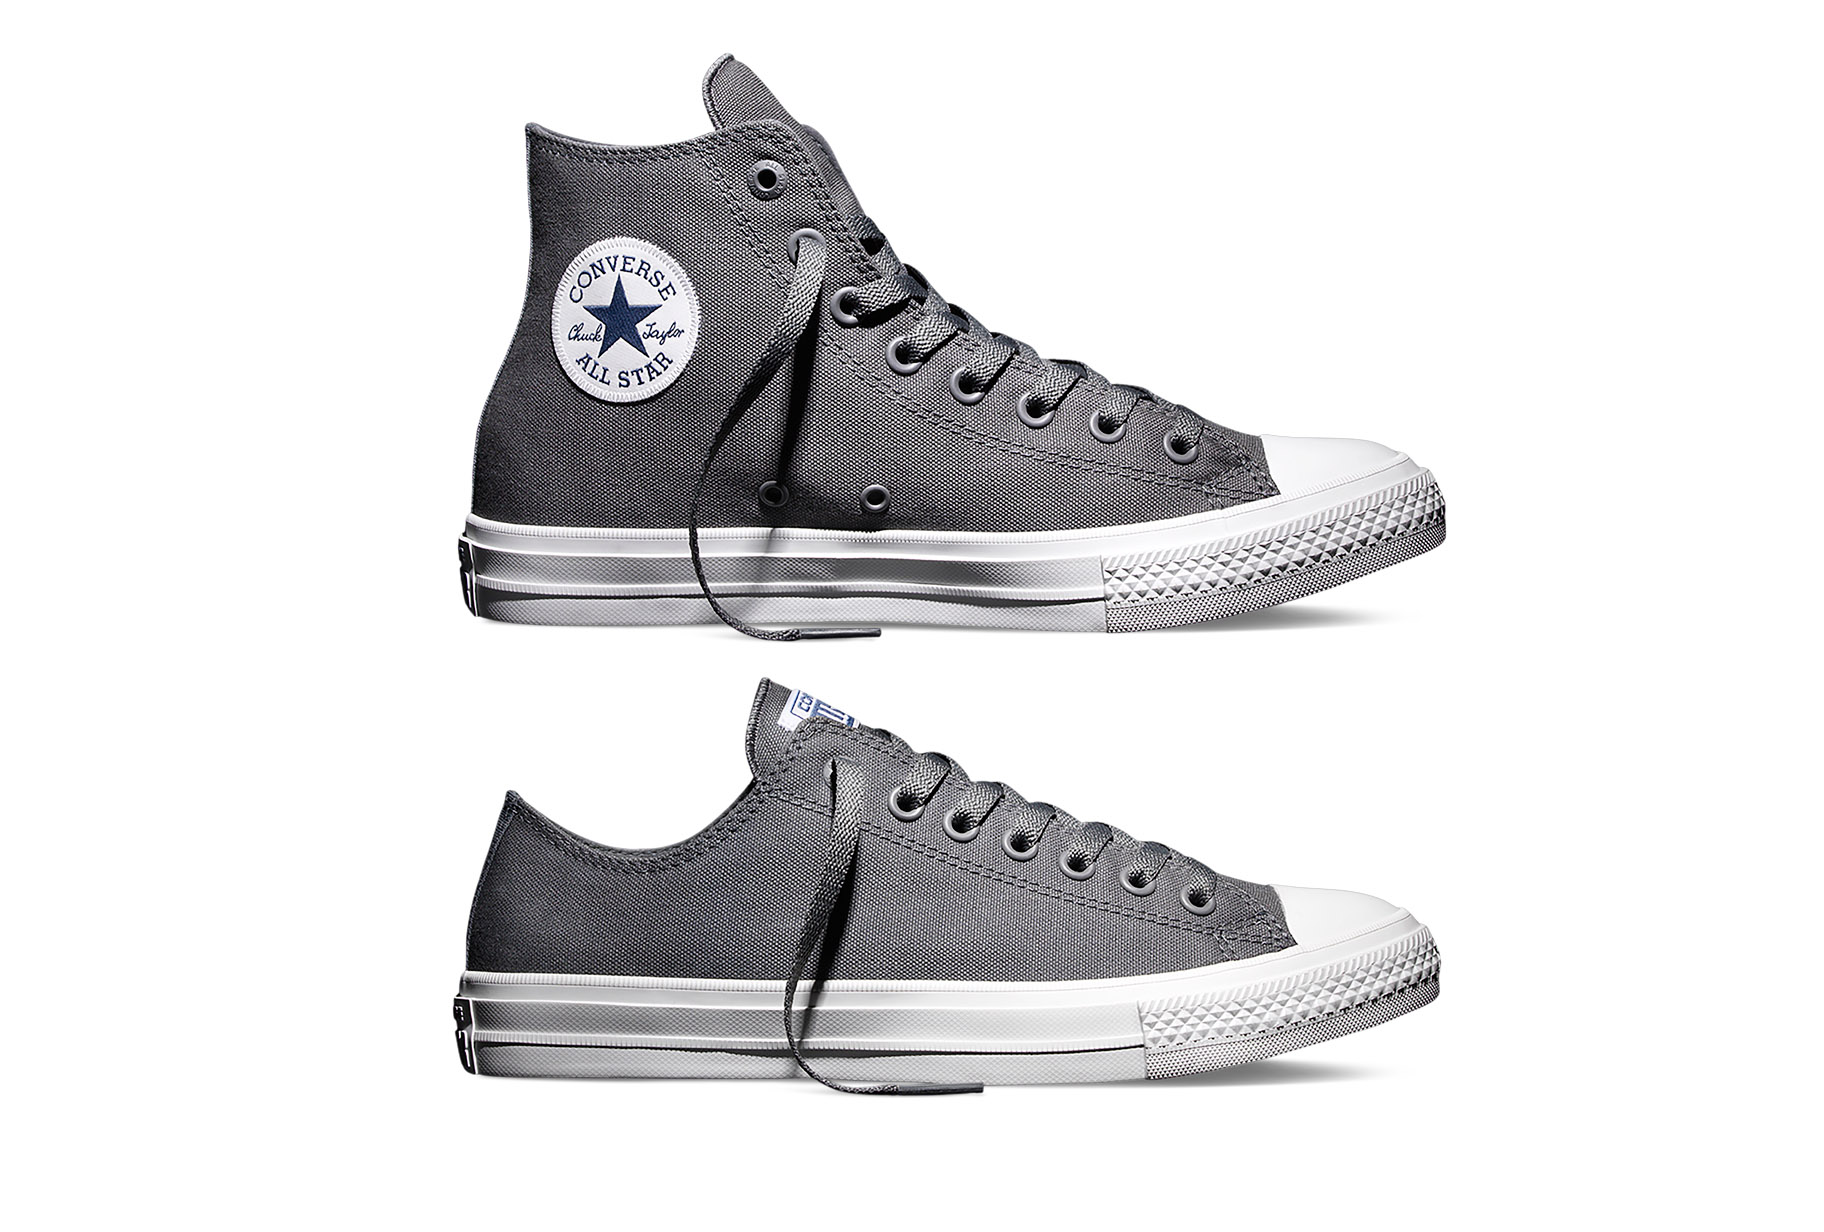 Converse Chuck Taylor All Star II 'Charcoal' – Available Now